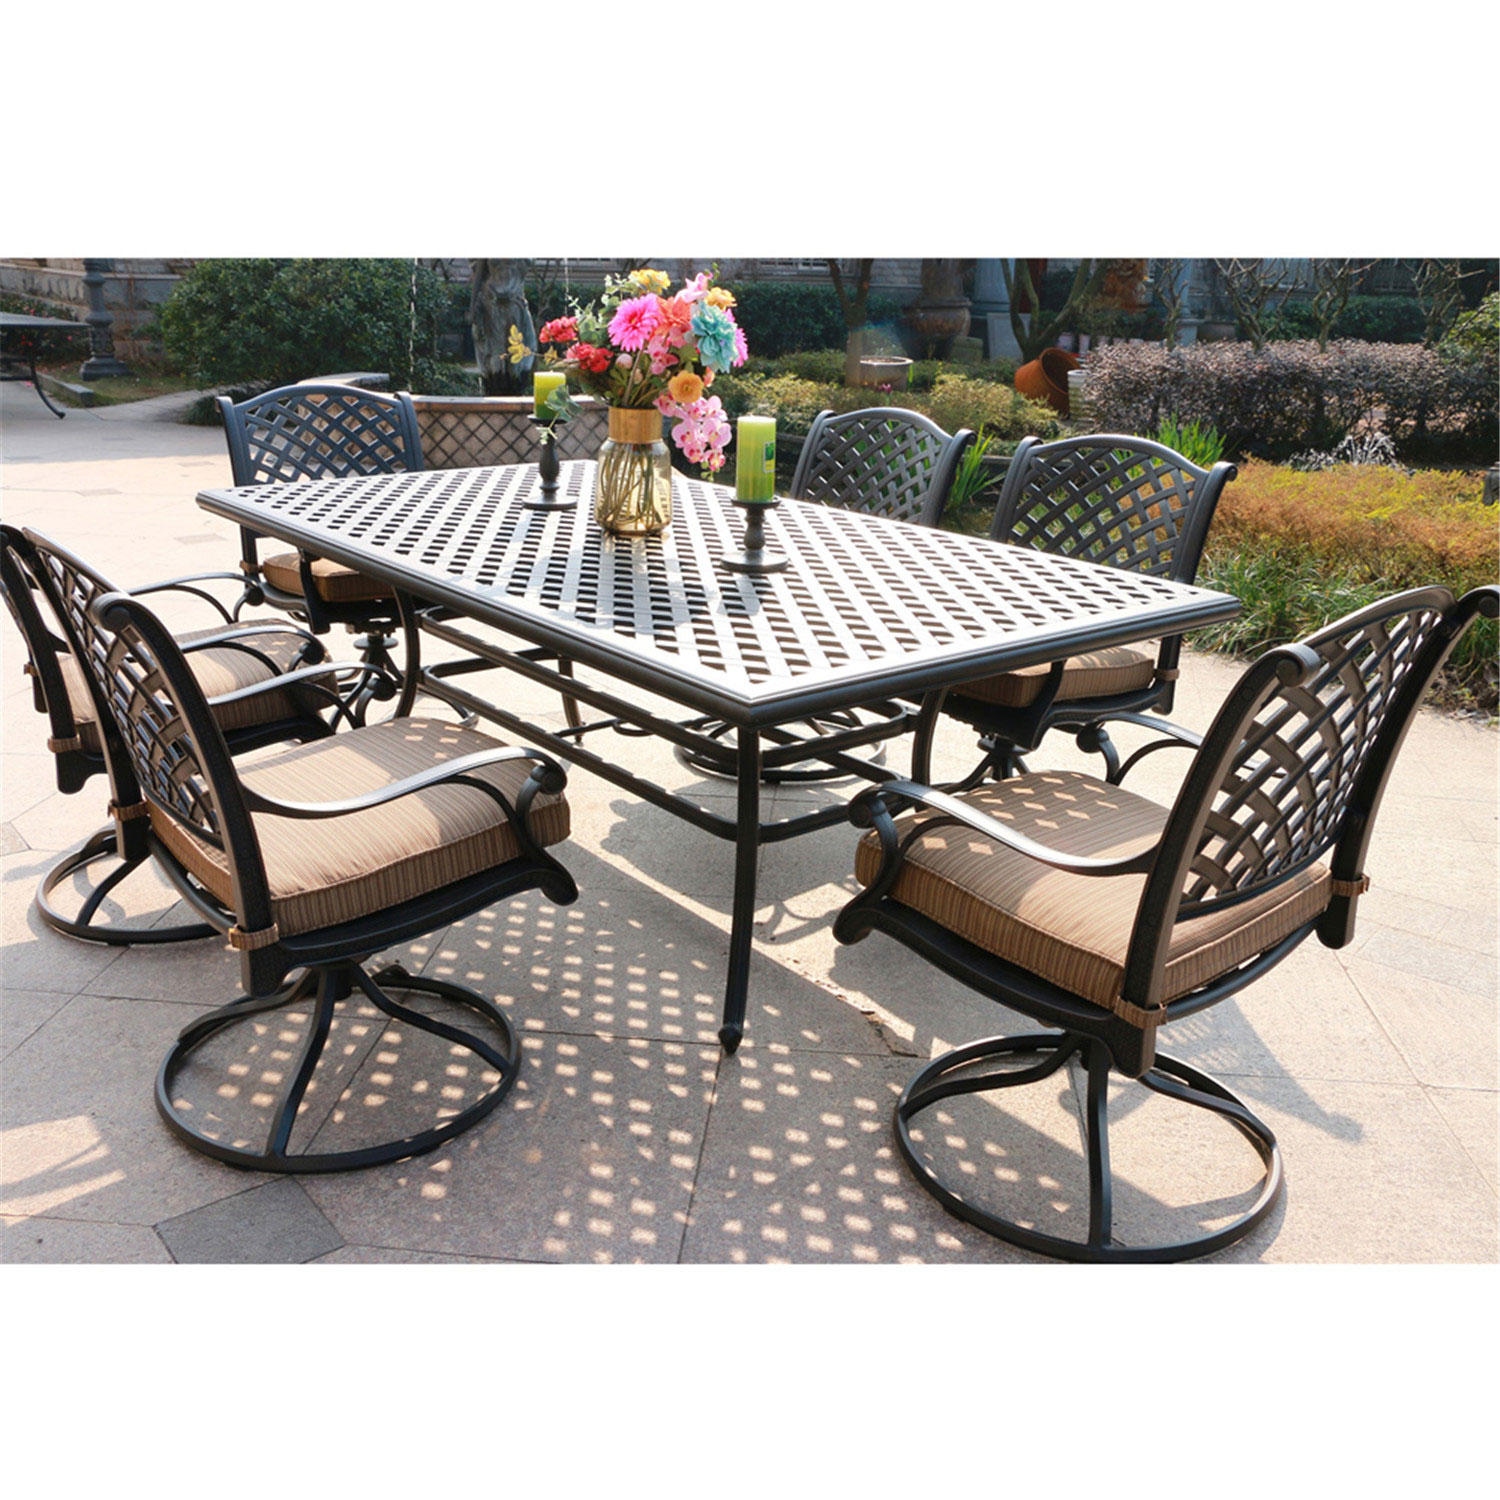 GatherCraft 7-Piece Aluminum Dining Set with Swivel Dining Chairs